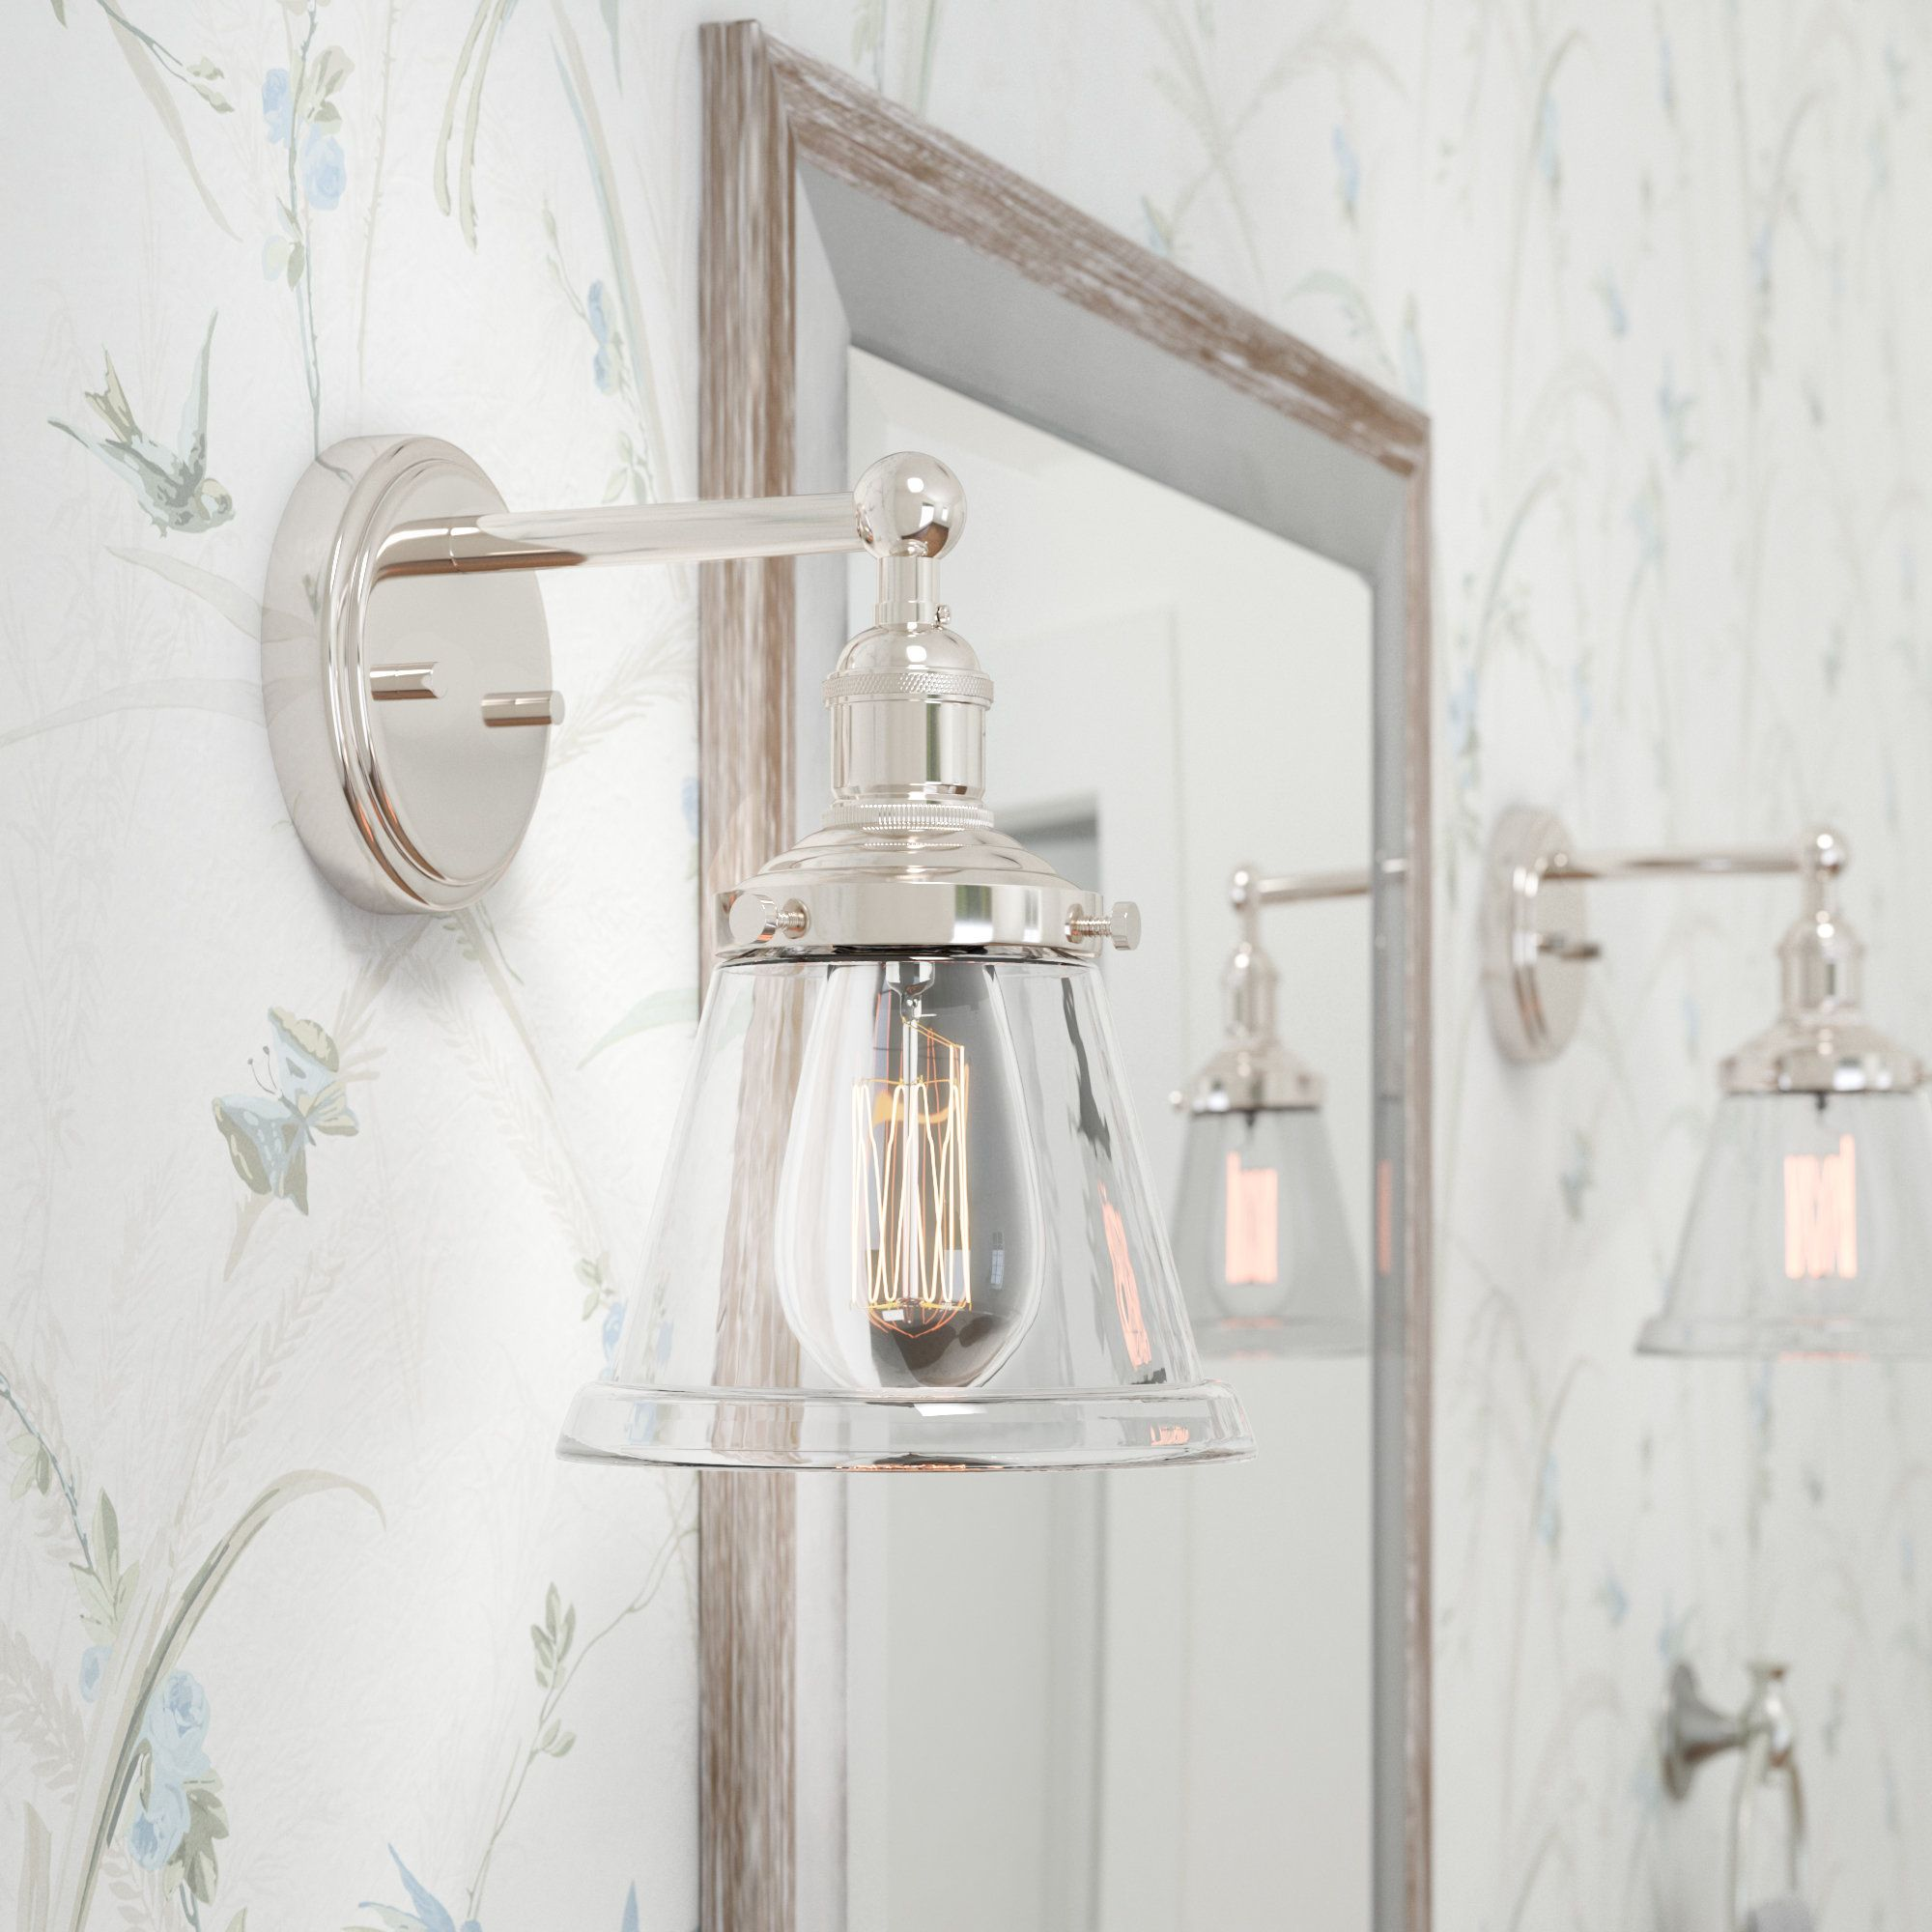 14 Visual Comfort Sconce With Glass Shade Bathroom Sconces Bathroom Light Fixtures Sconces